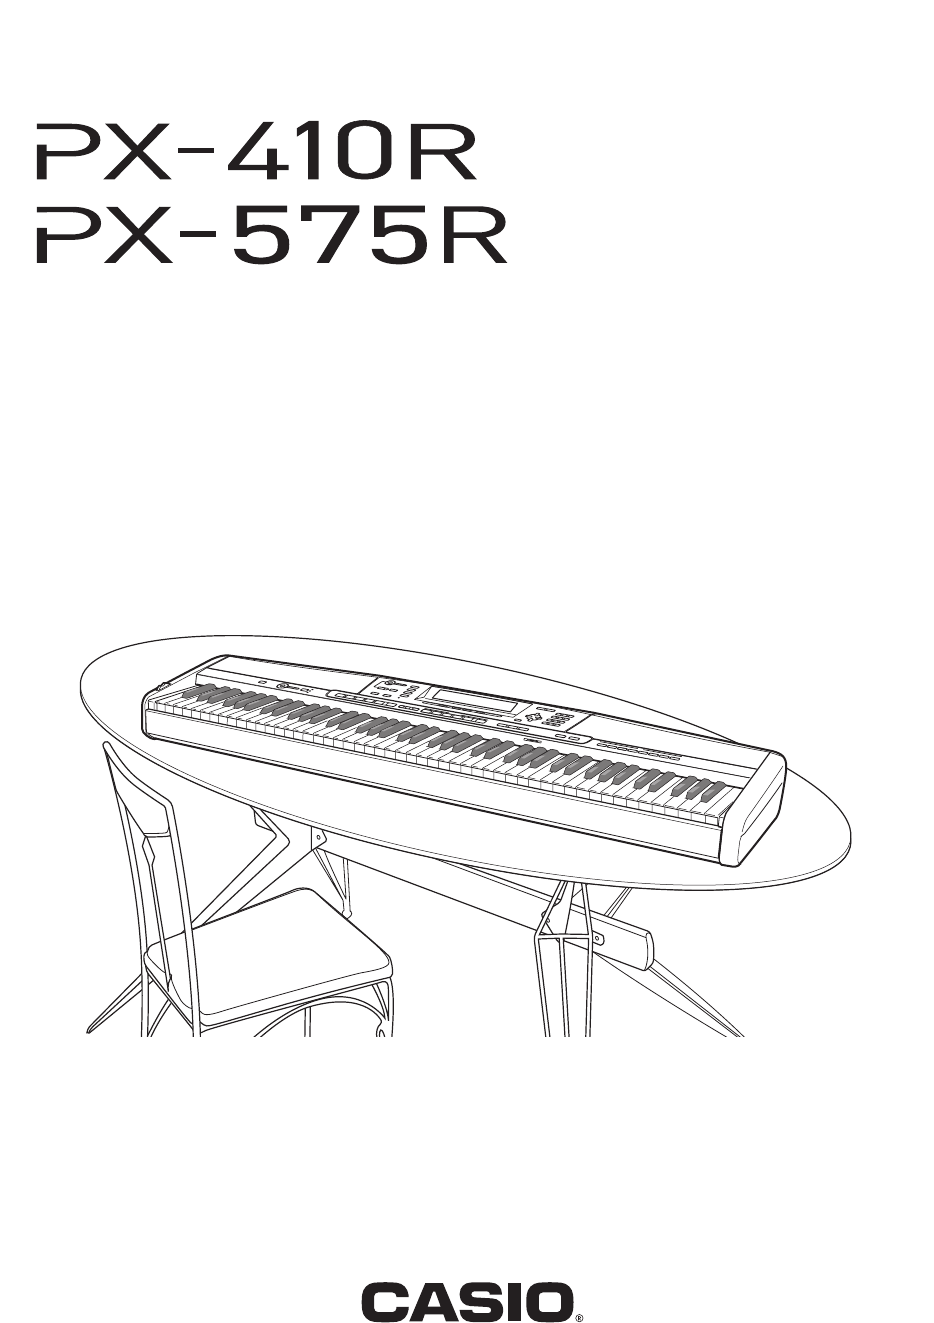 casio px-575r manual